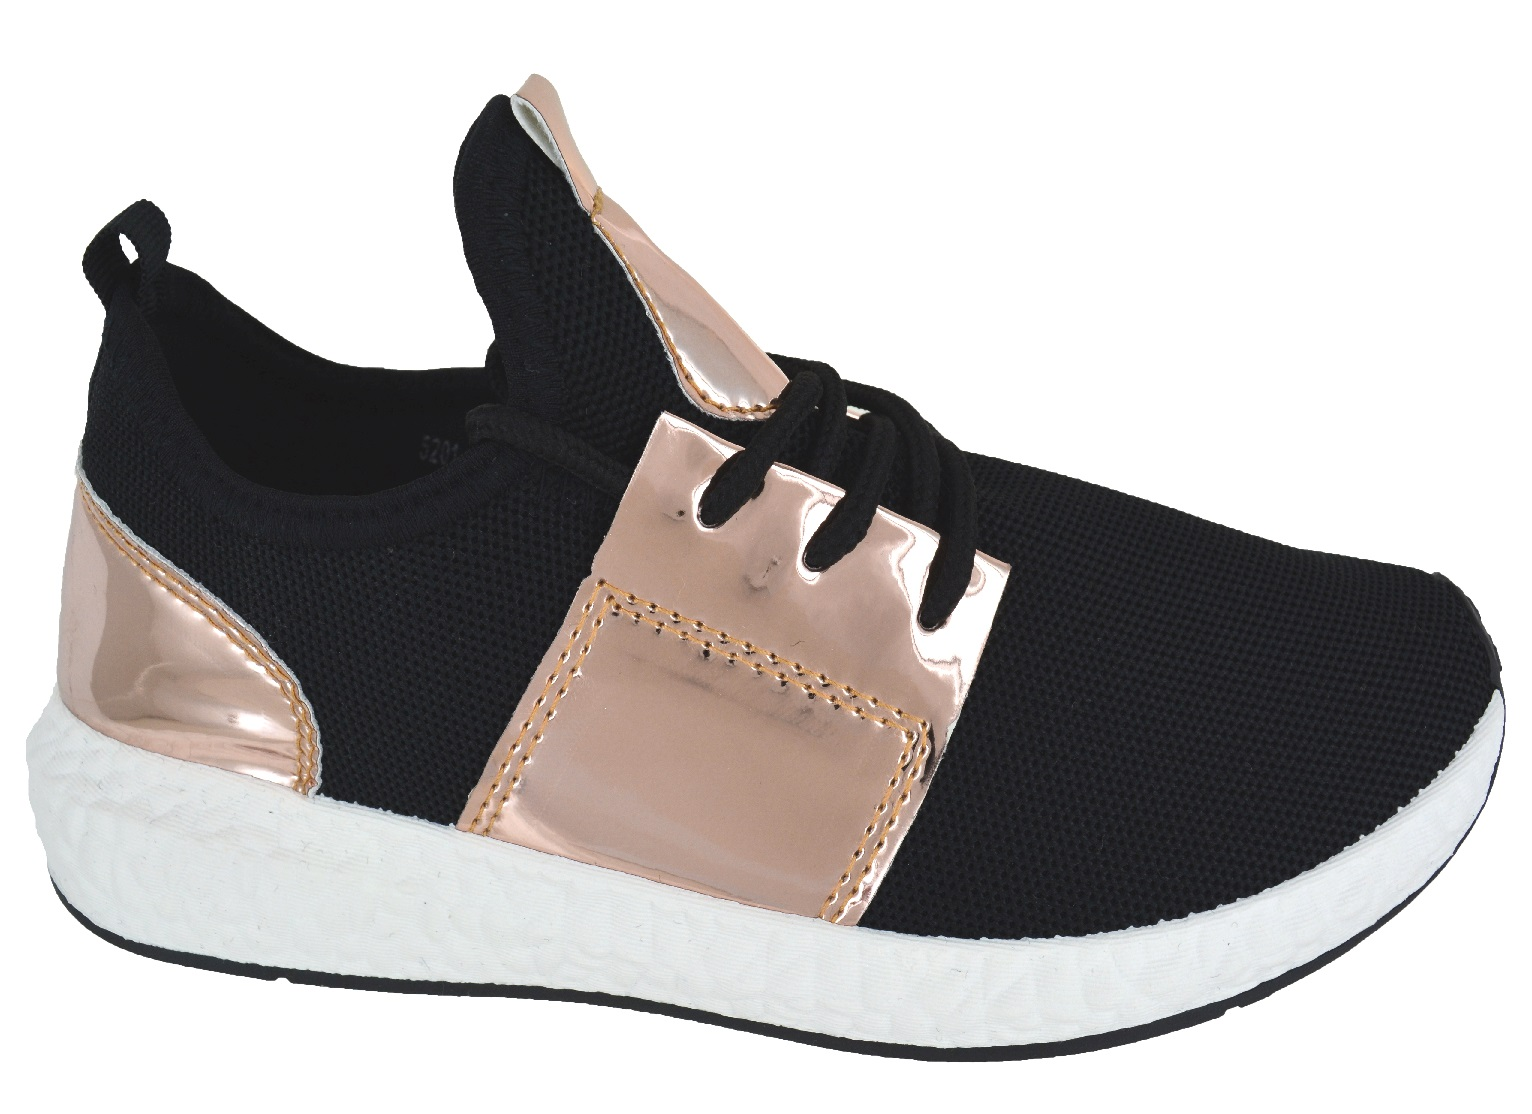 LADIES-WOMENS-FLAT-SPORT-RUNNING-BALI-GYM-LACE-UP-GYM-FITNESS-TRAINERS-SHOES-SZ